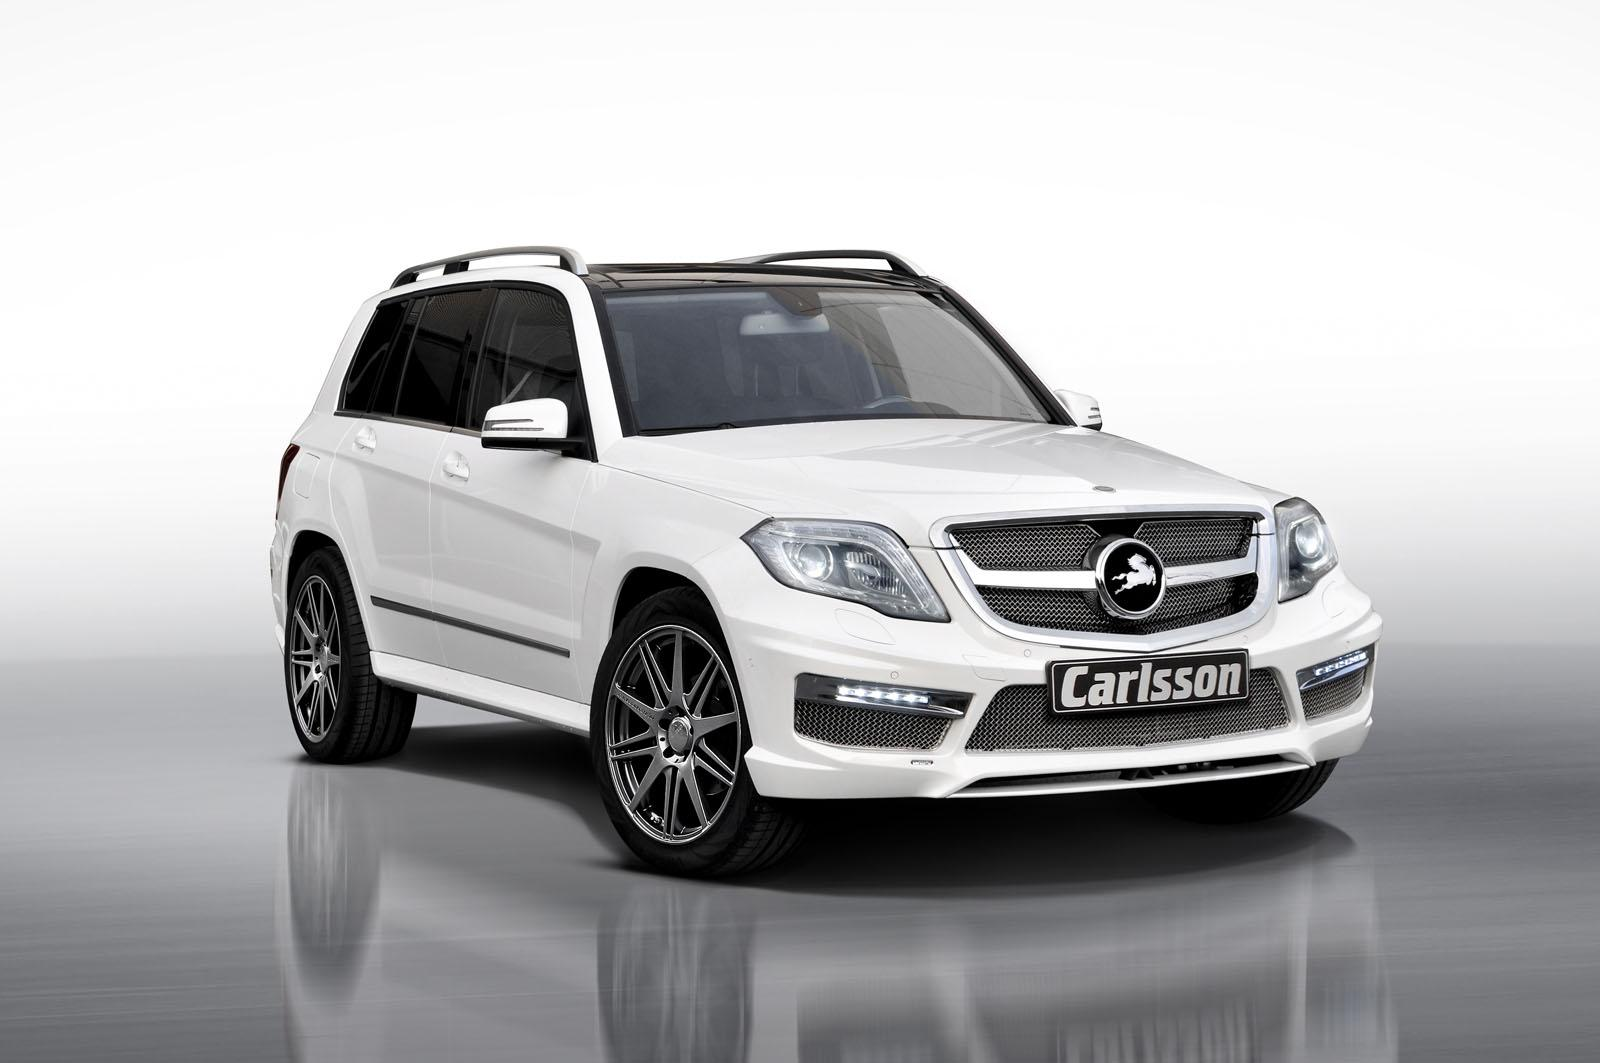 2013 carlsson mercedes classe glk 220 cdi diesel dark. Black Bedroom Furniture Sets. Home Design Ideas